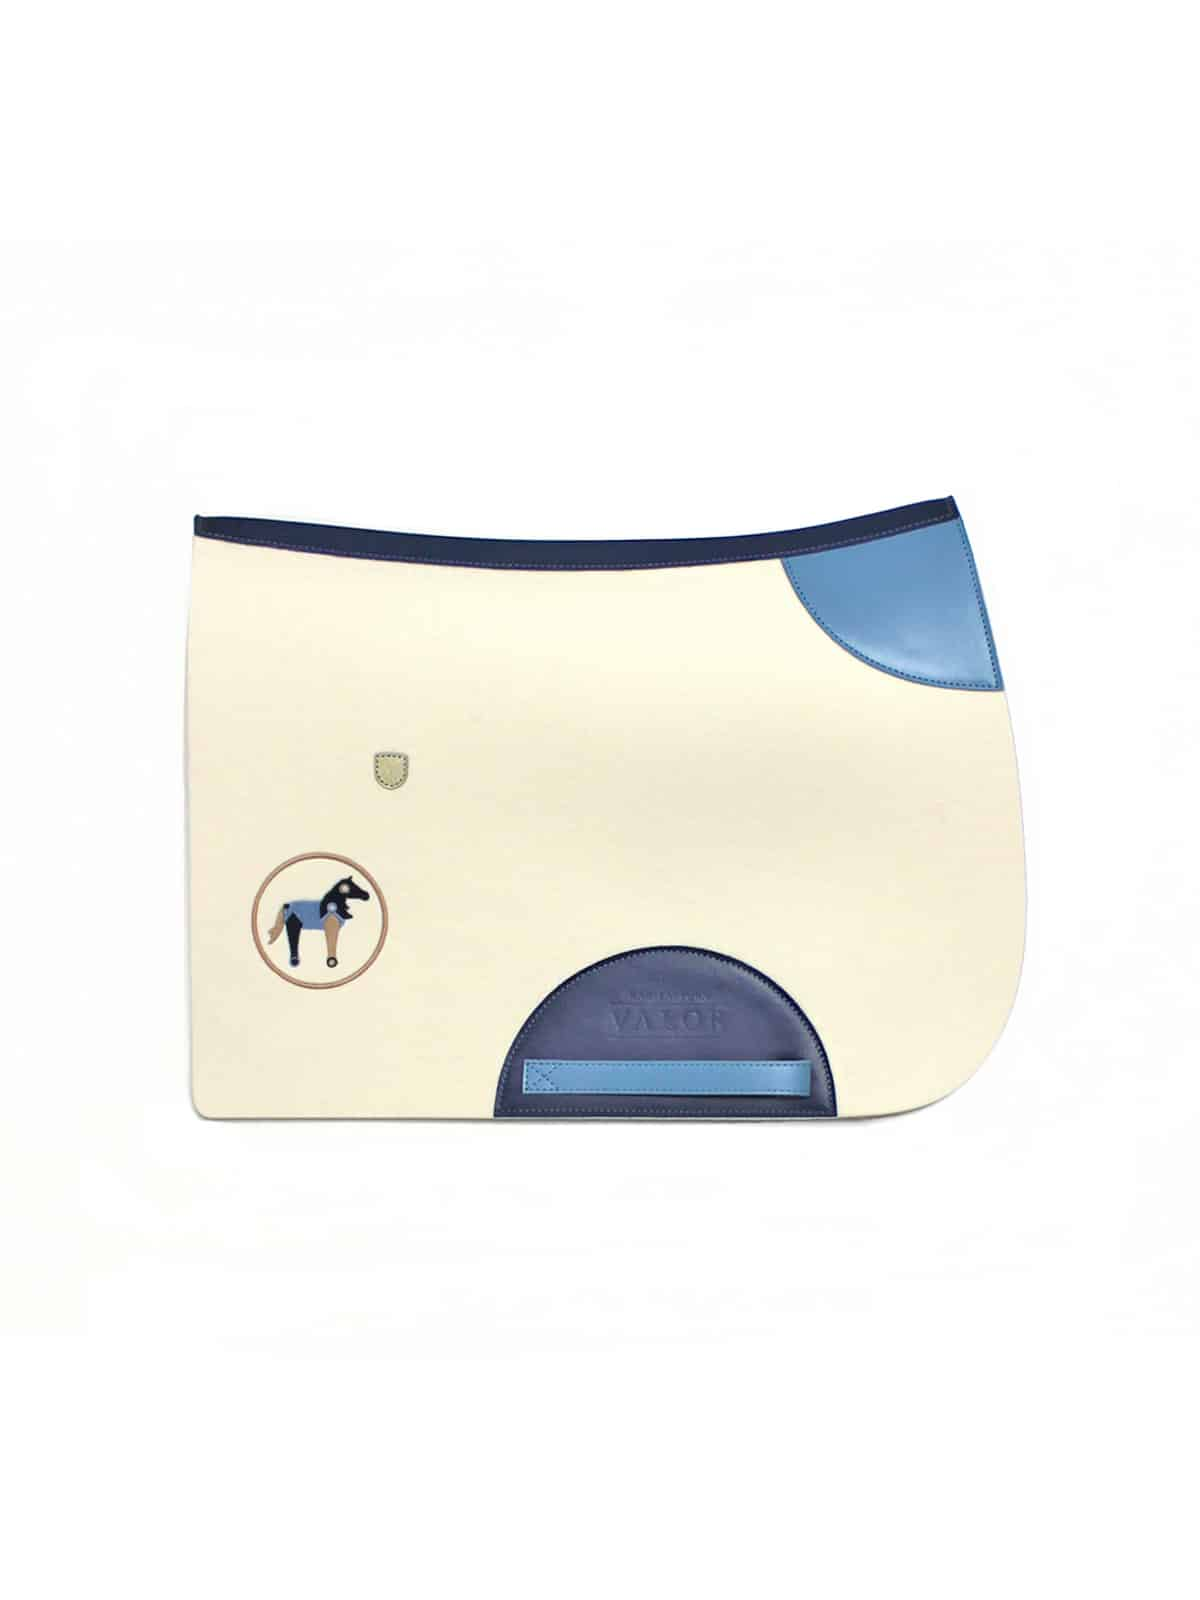 white and blue wool saddle pad for a boy